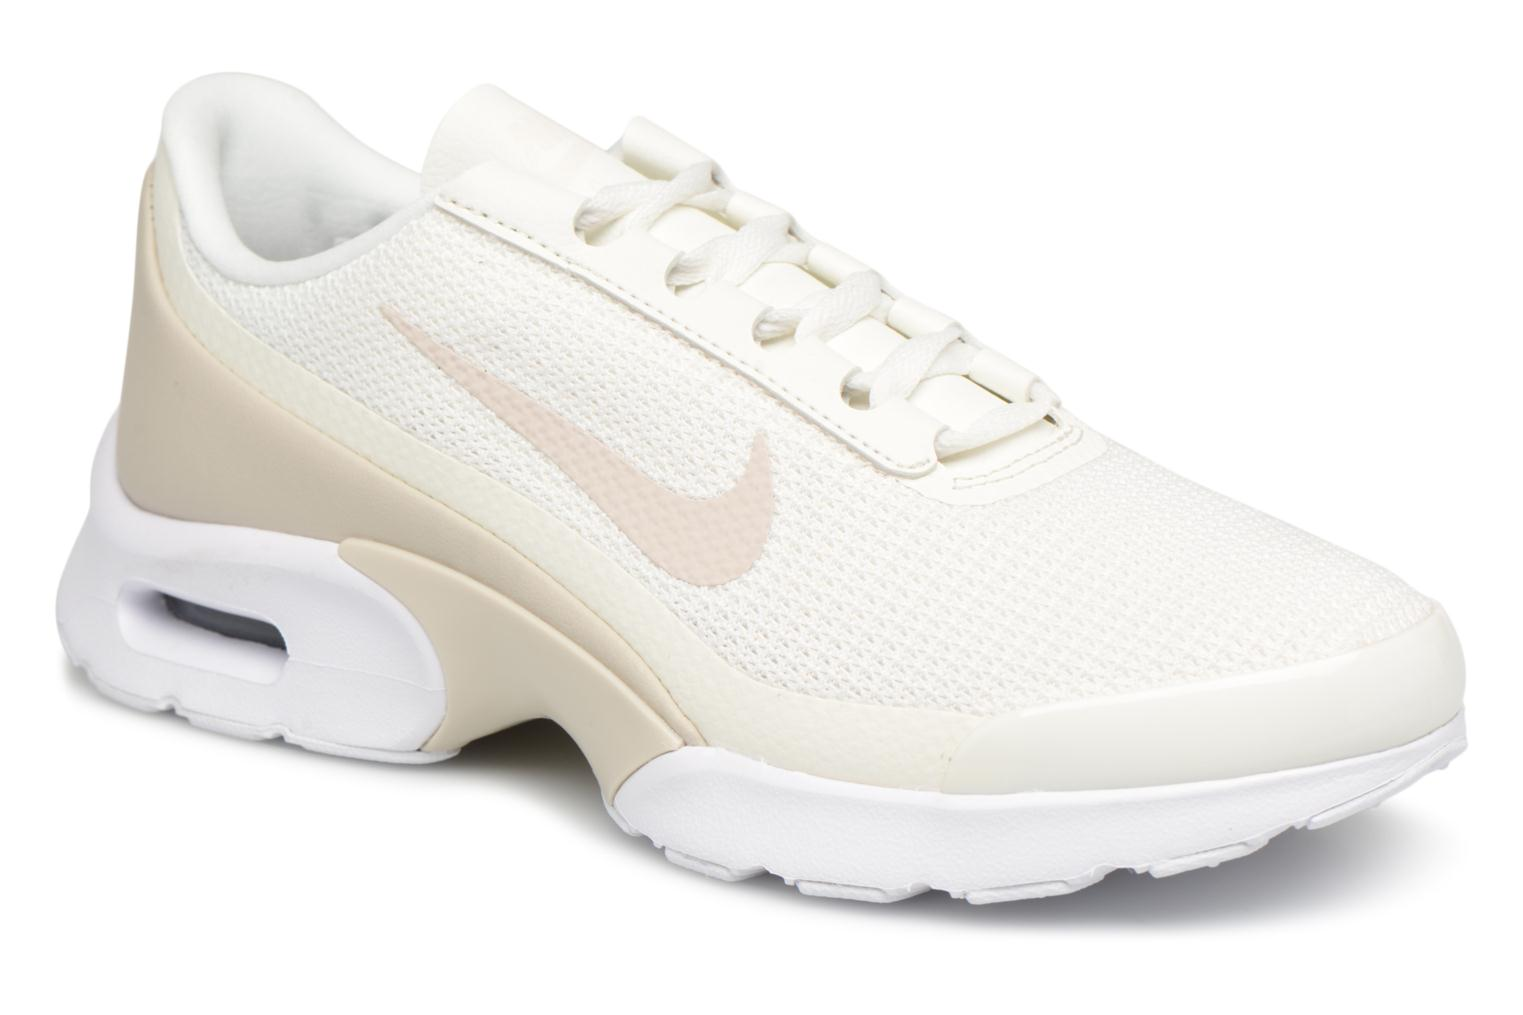 sports shoes 0b4c9 18410 Zapatos promocionales Nike Wmns Nike Air Max Jewell (Beige) - Deportivas  Zapatos de mujer